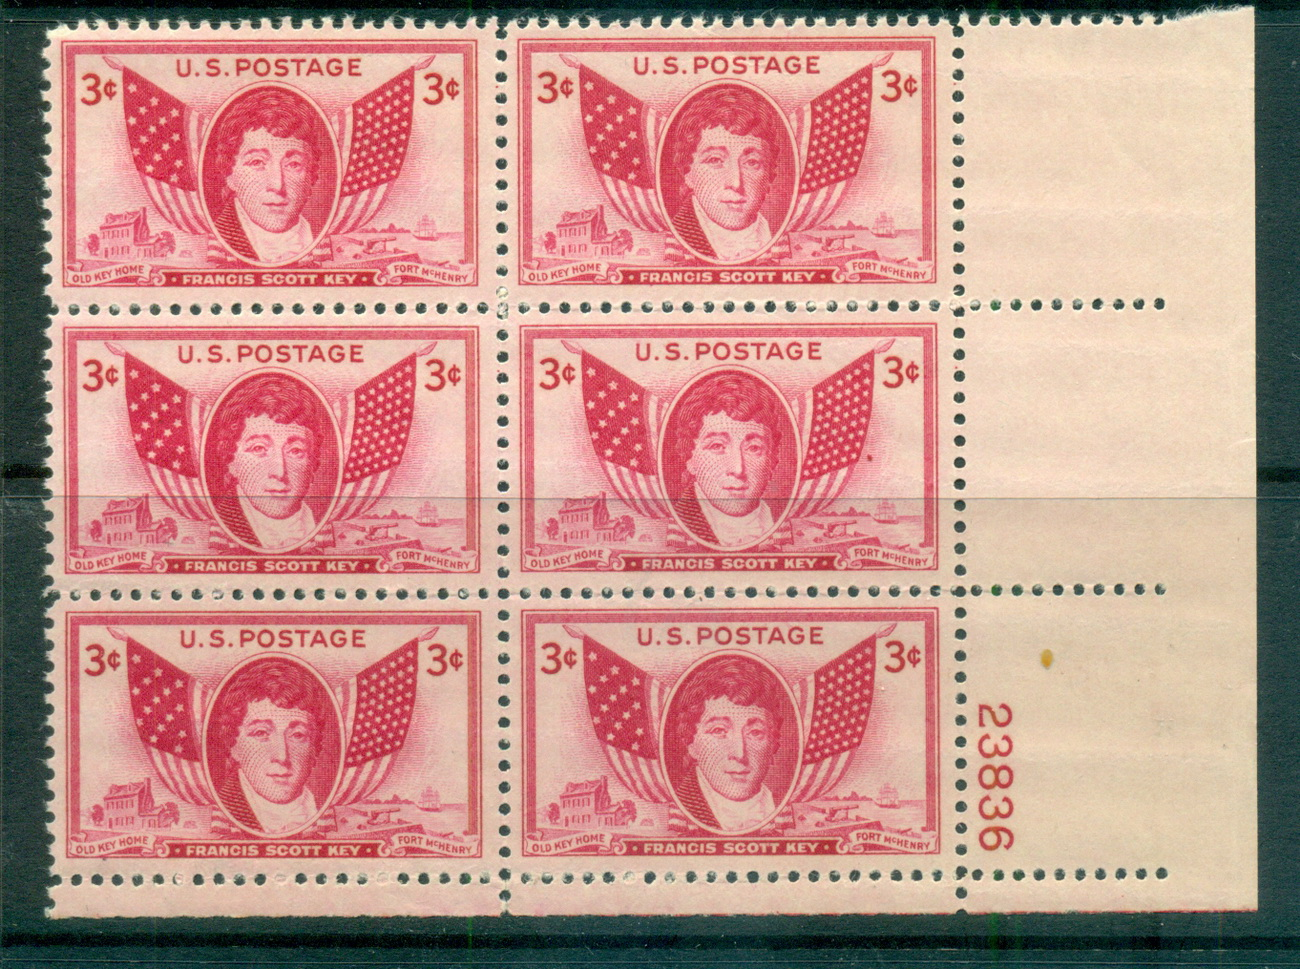 USA 1948 Sc#962 Francis Scott Key PB6#23836 MUH lot67651